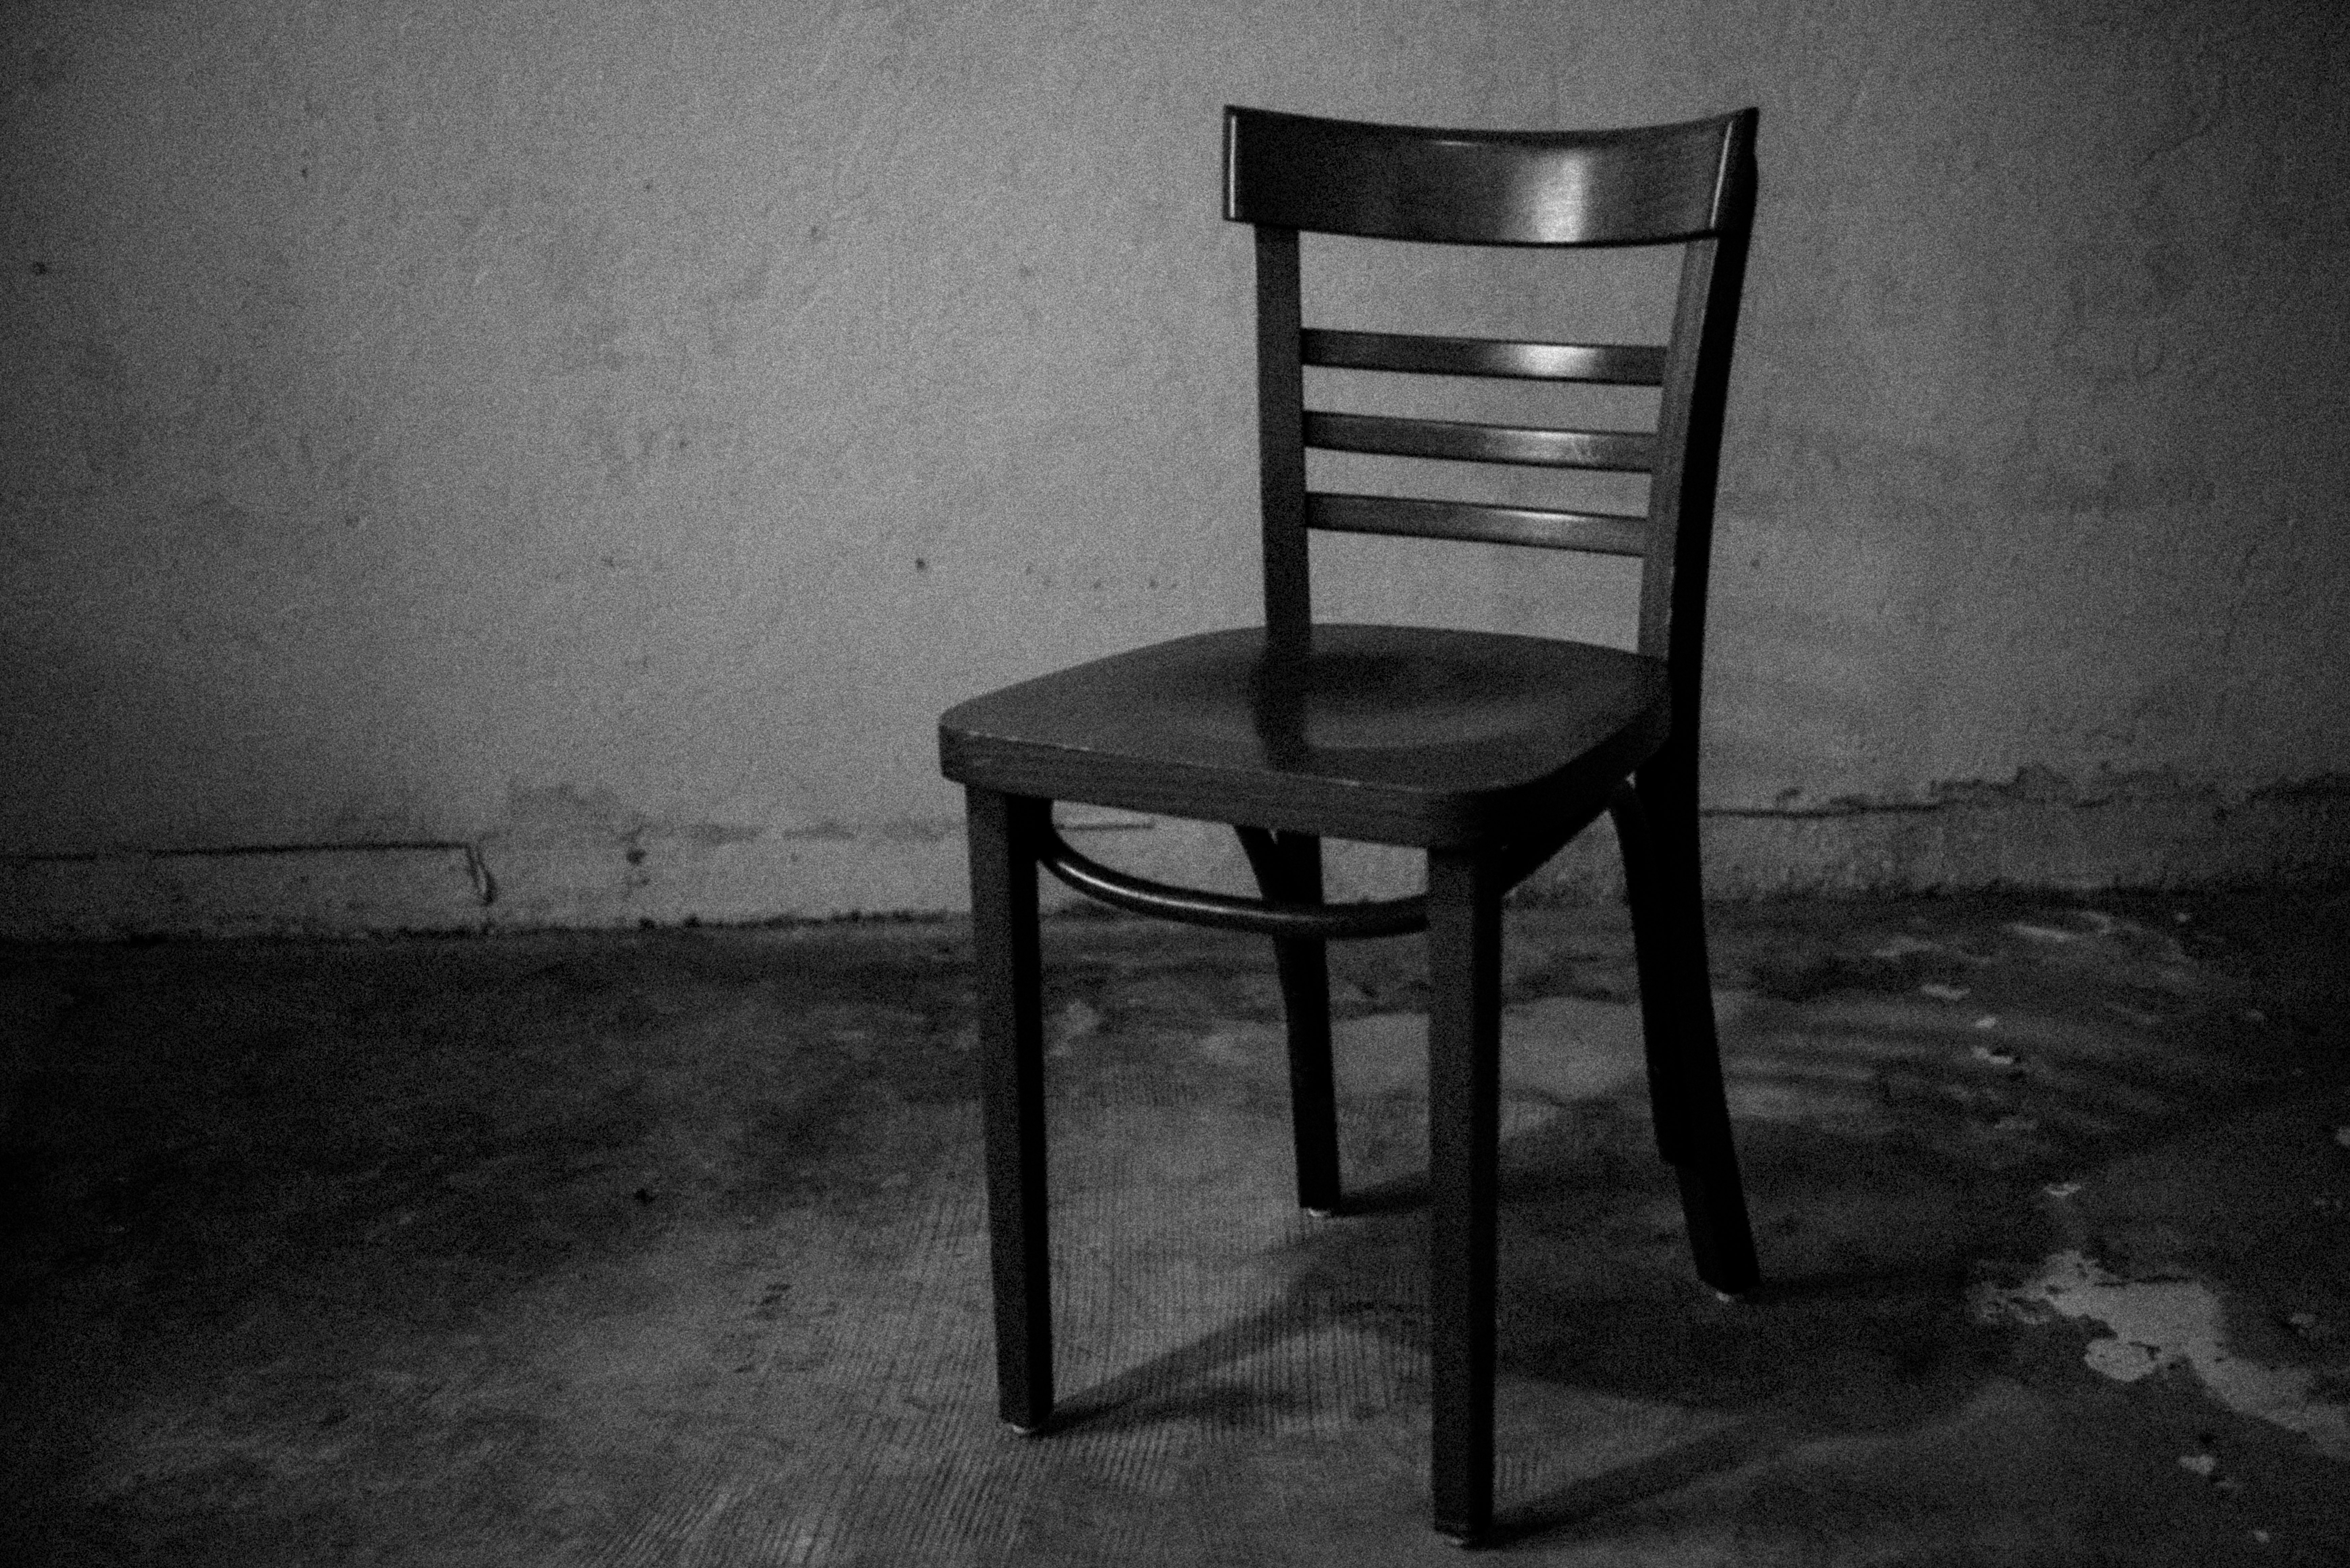 A Lonely Room And Empty Chair